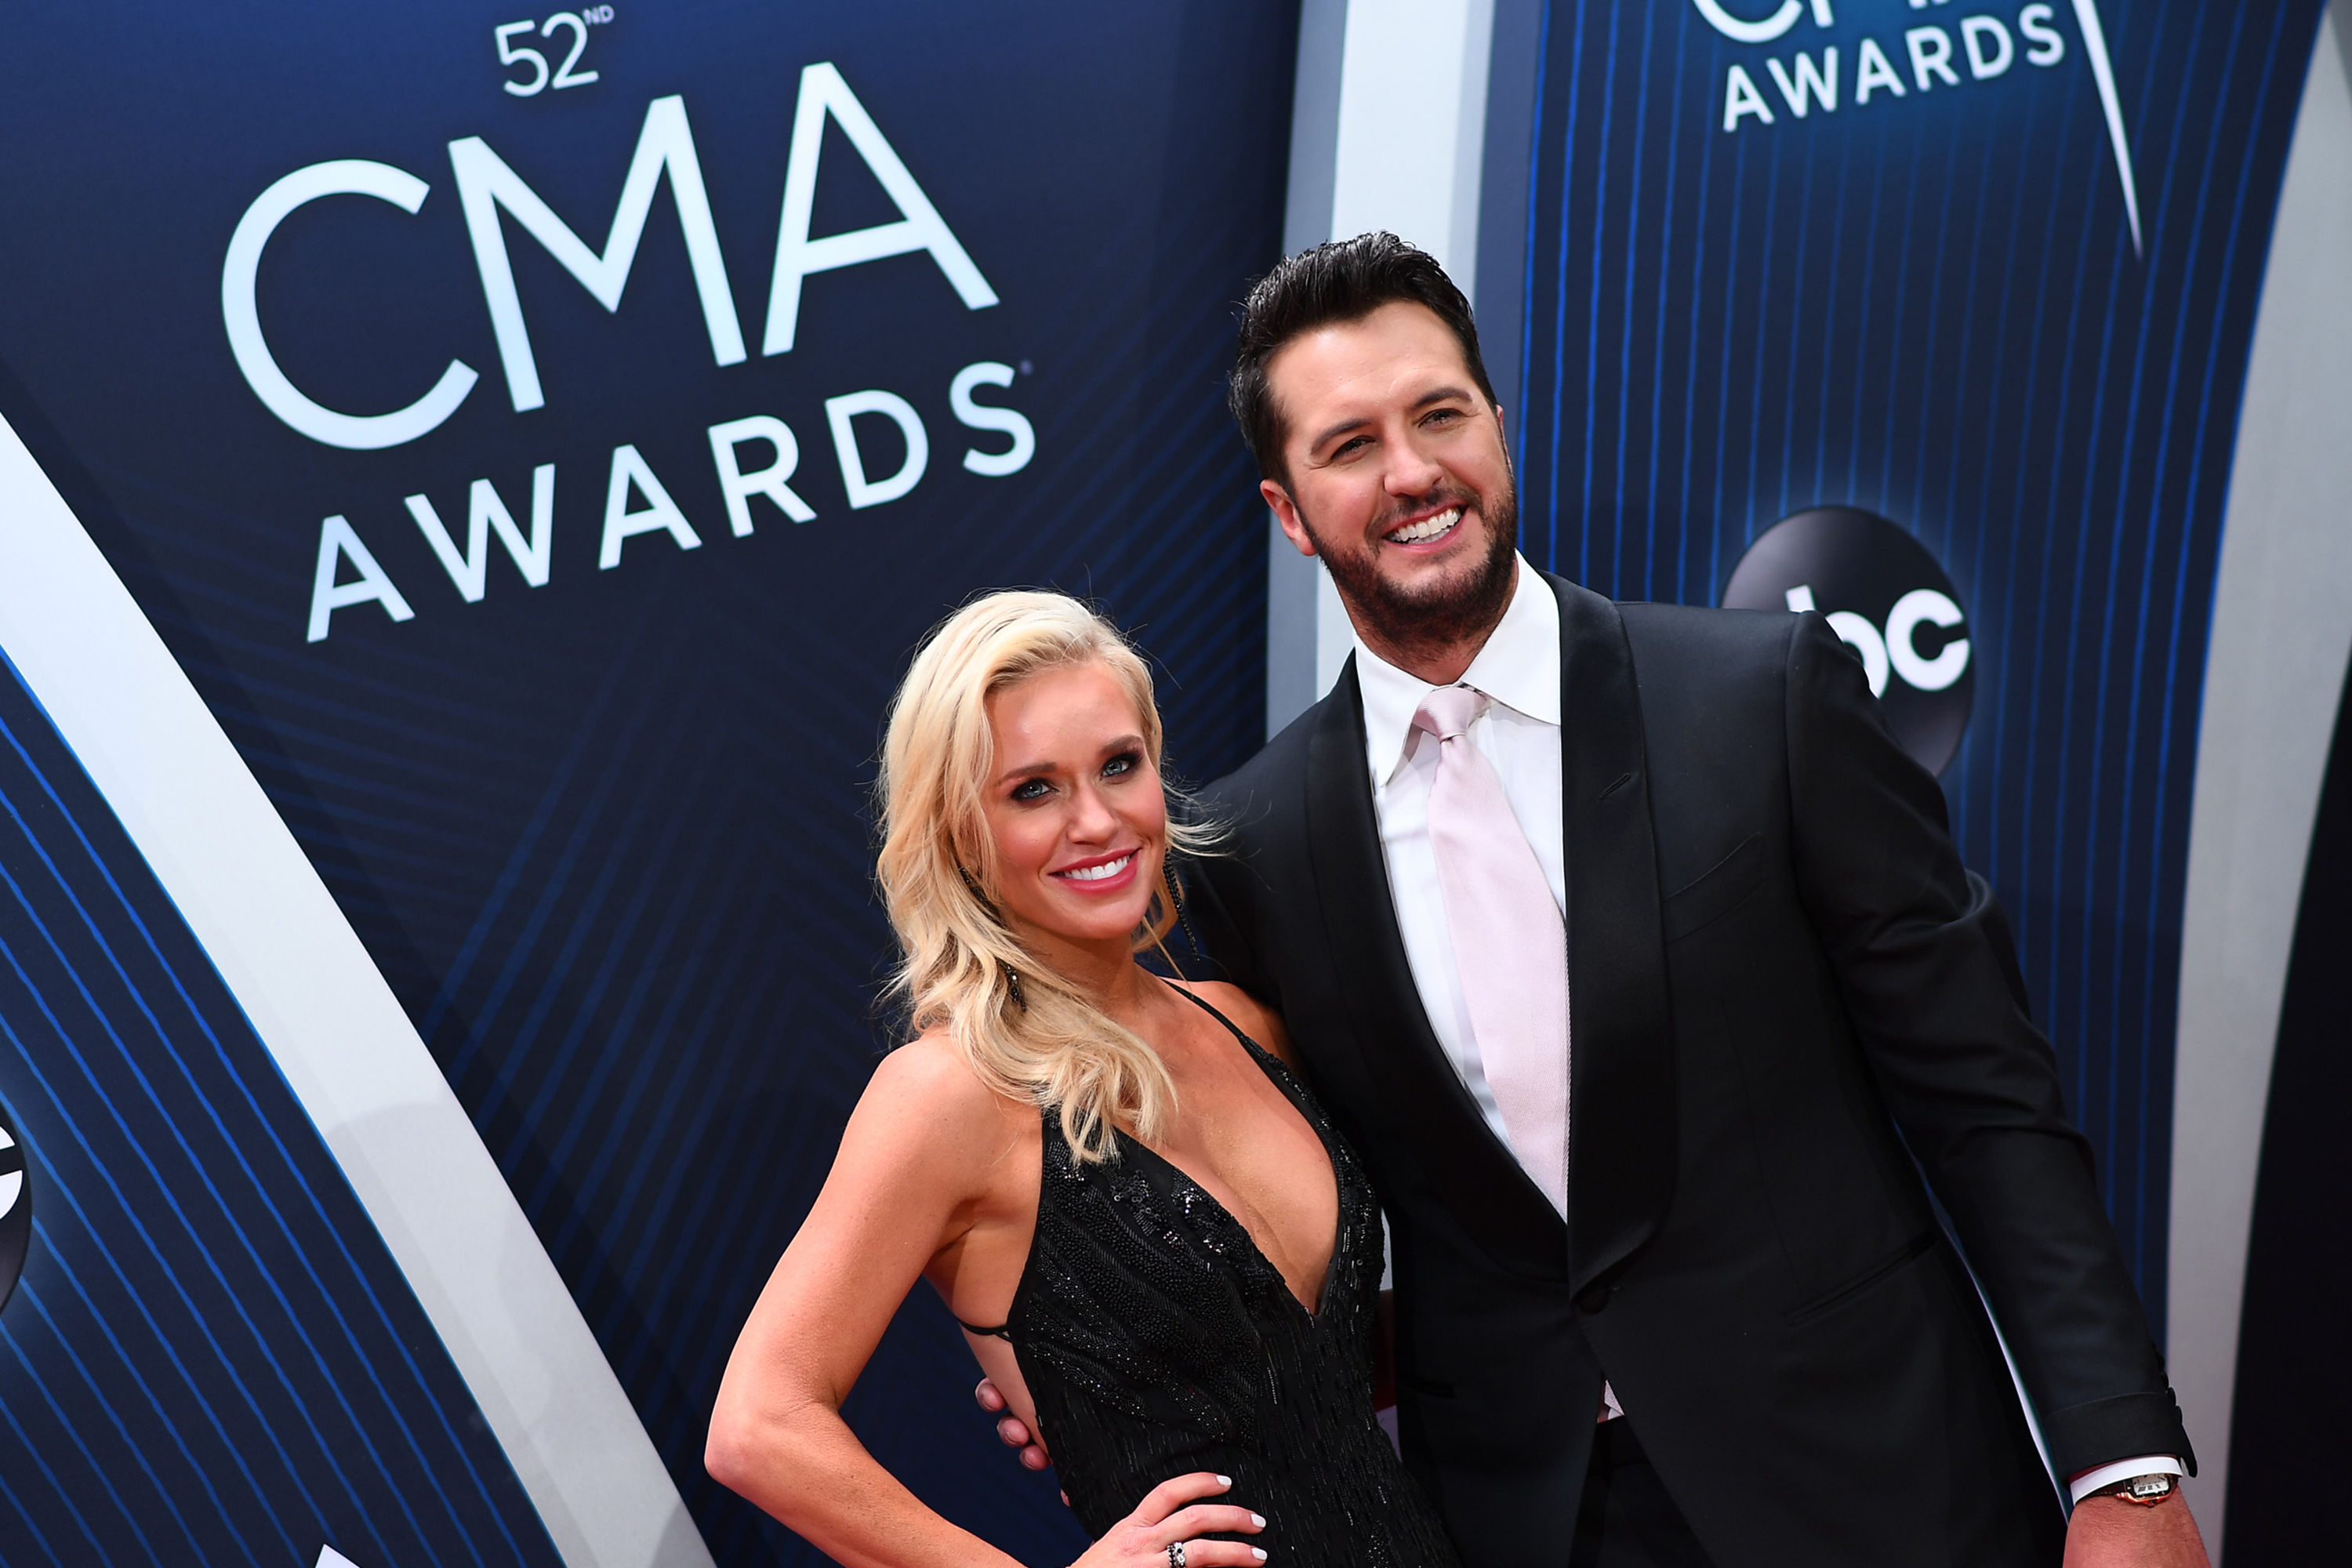 WATCH: Luke Bryan and His Wife, Caroline Boyer, Met at This Georgia College Bar